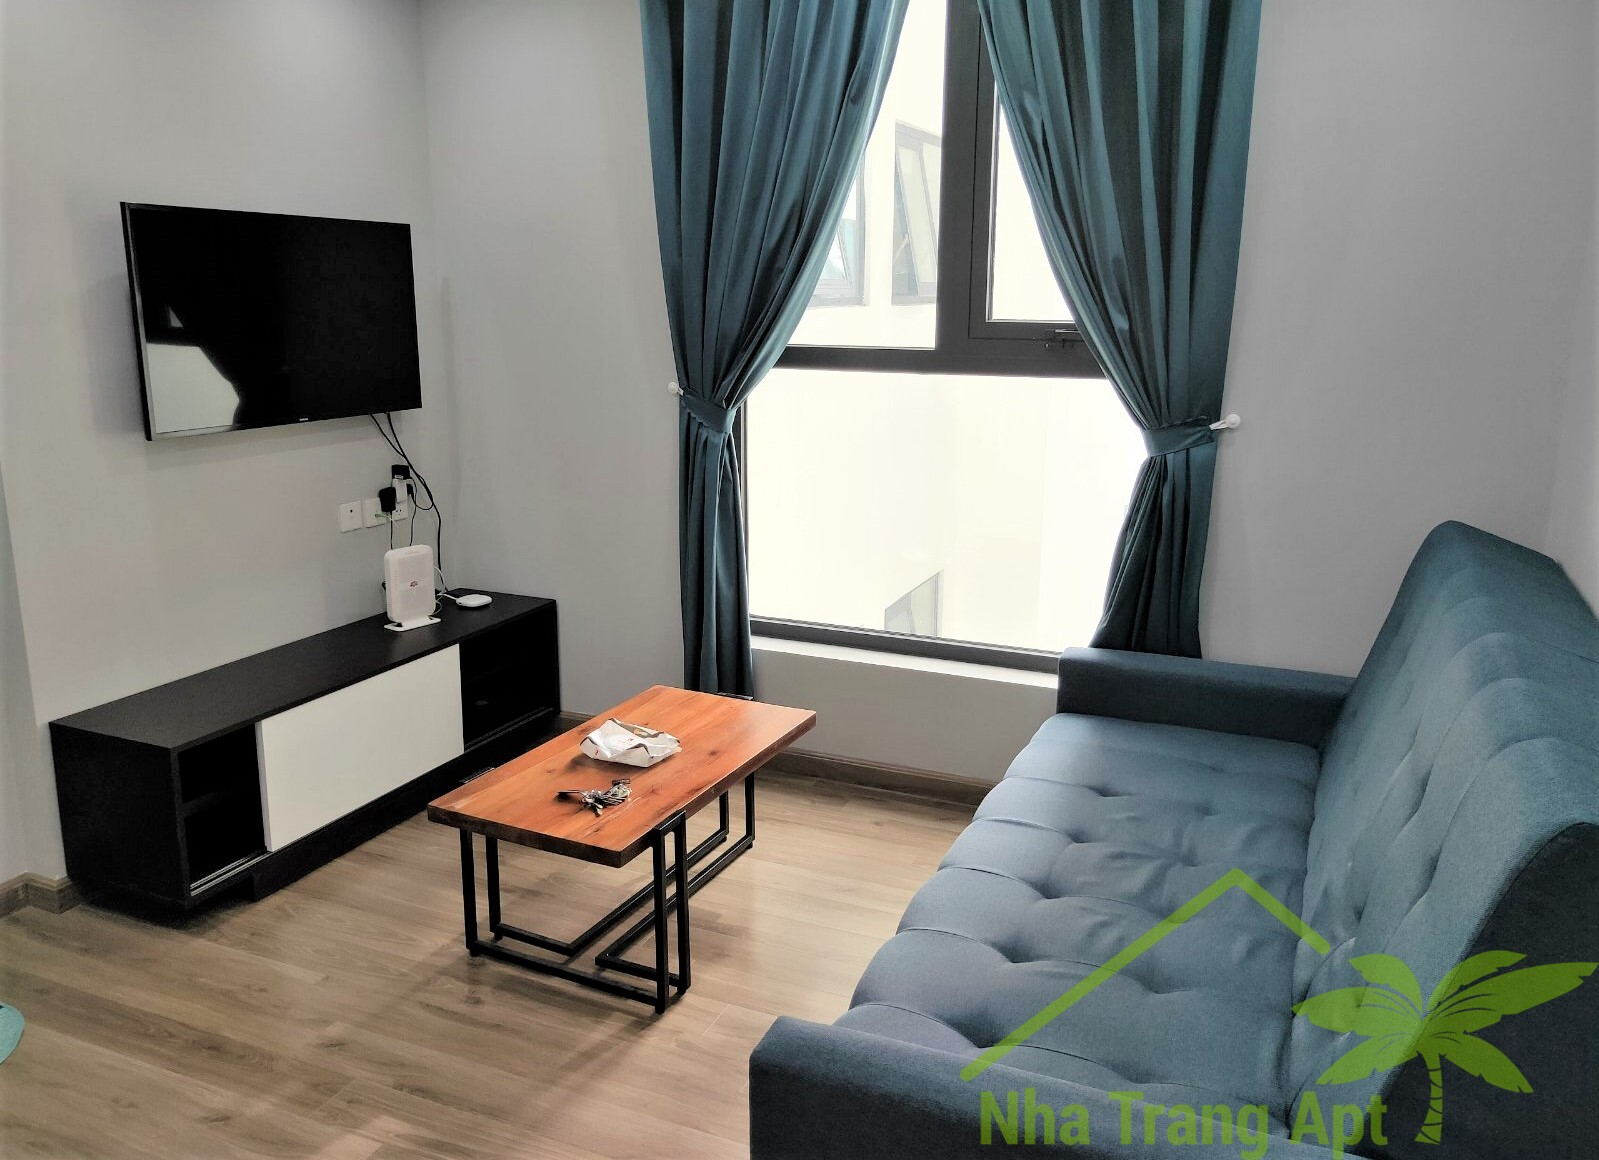 1 br apartment for rent in Hud building Nha Trang A613